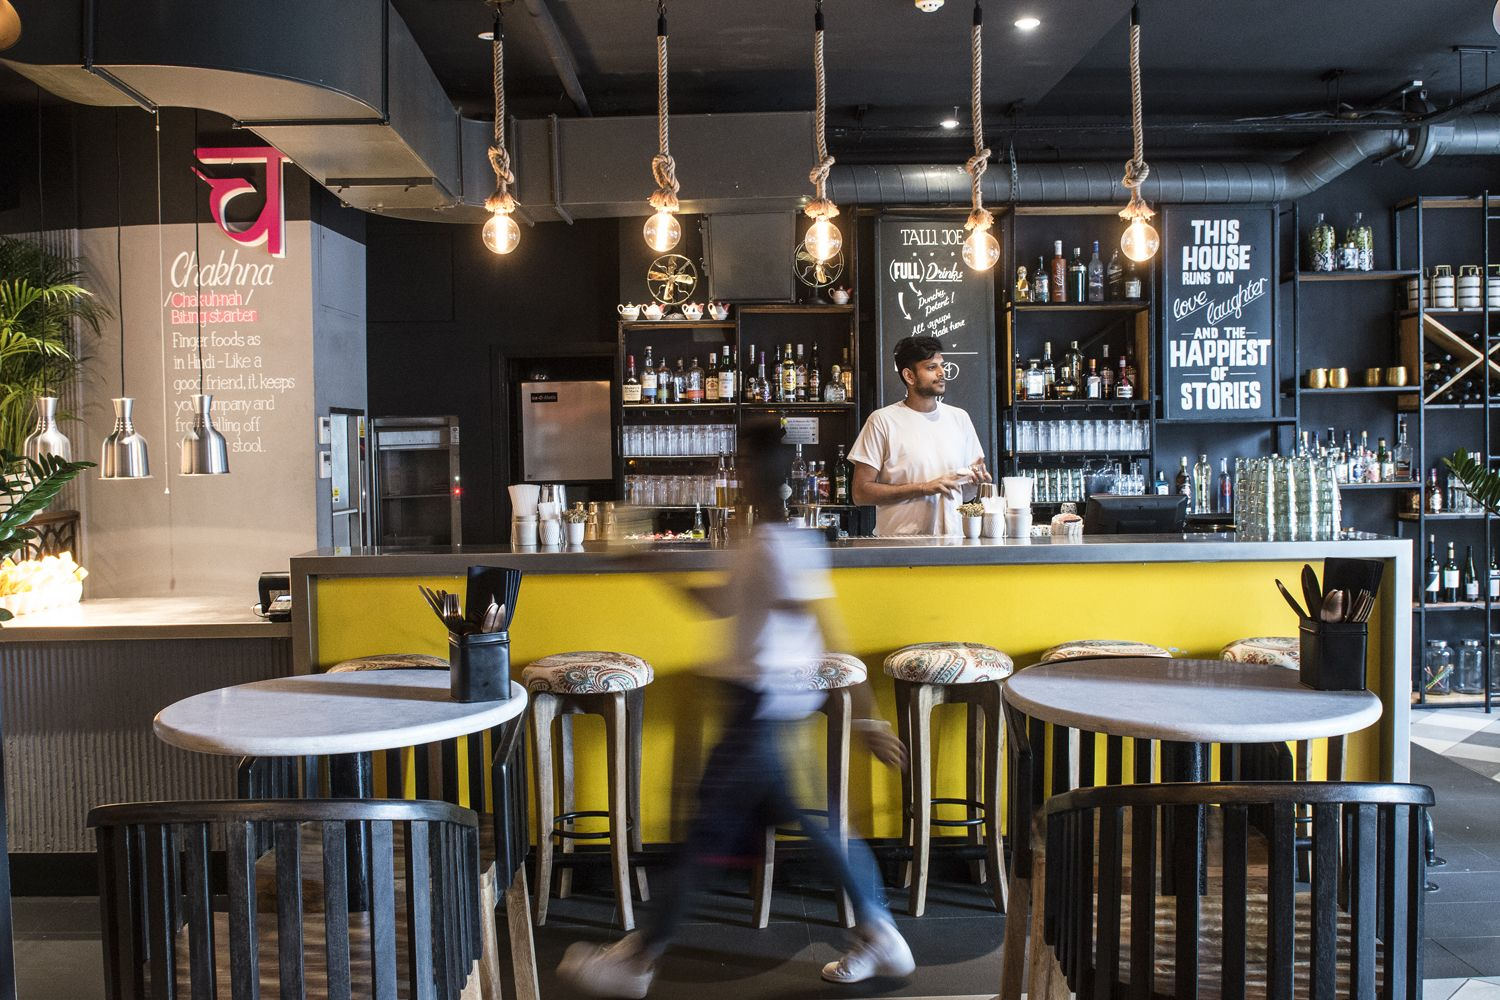 Indian restaurants interior design anyone who has travelled on indiaus roads will warm to the legend of